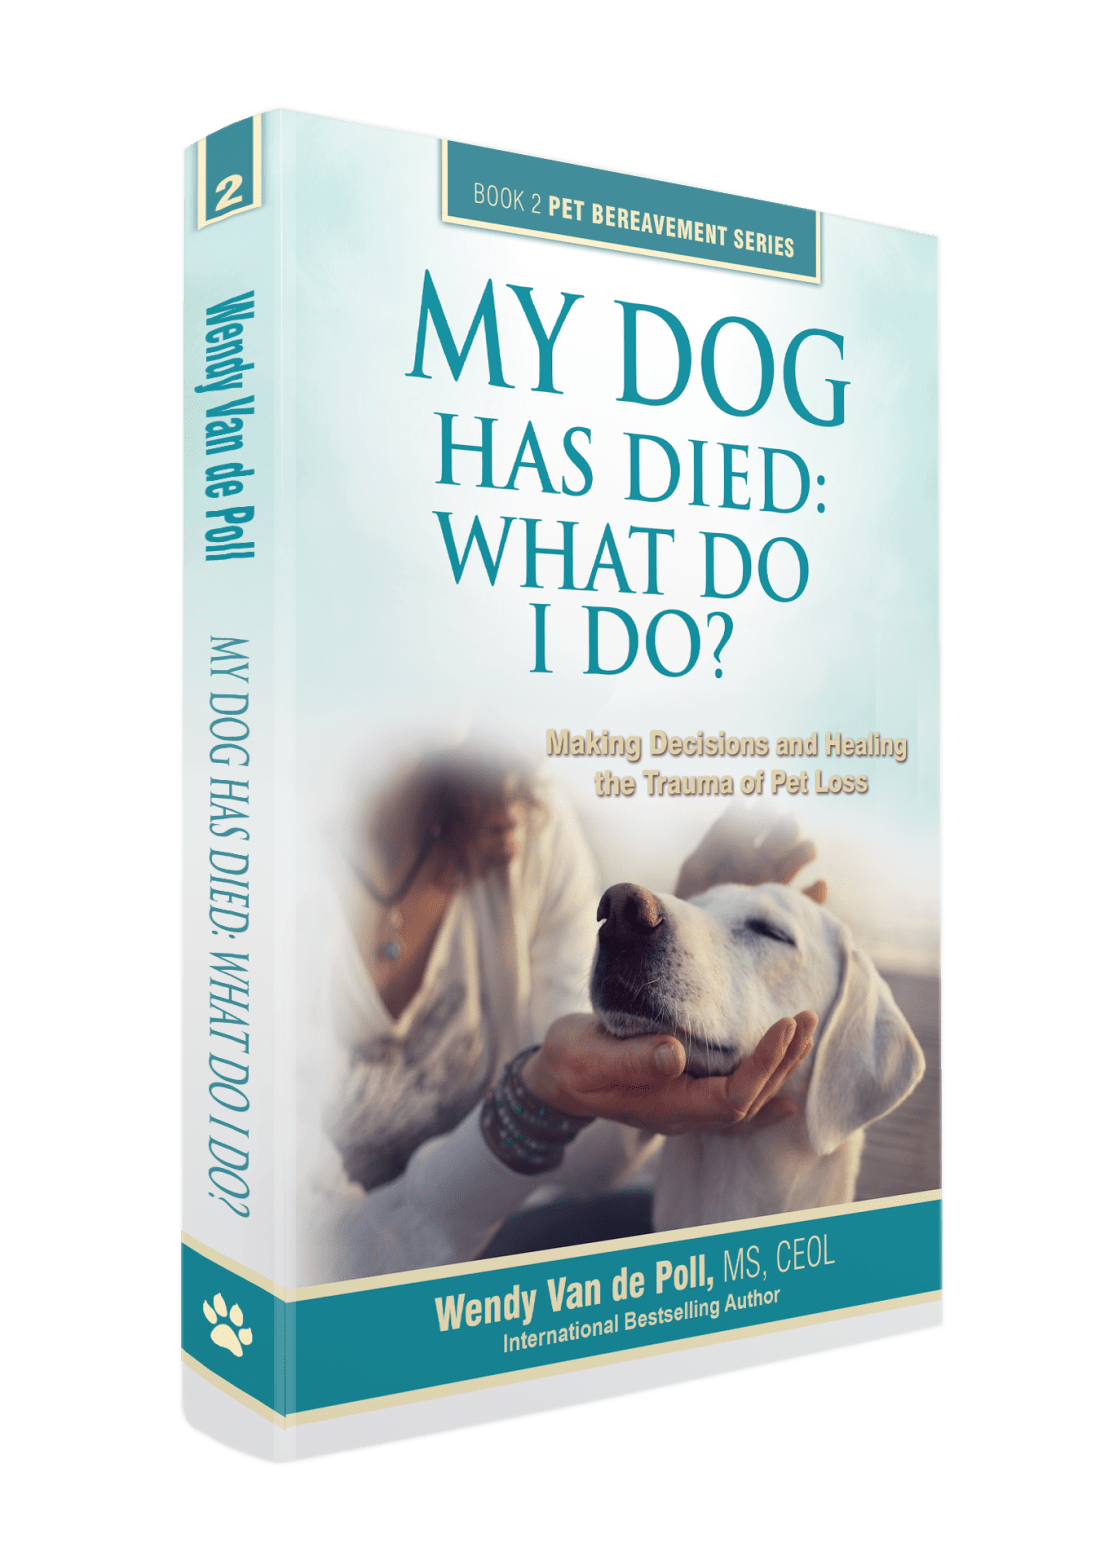 My Dog Has Died book cover